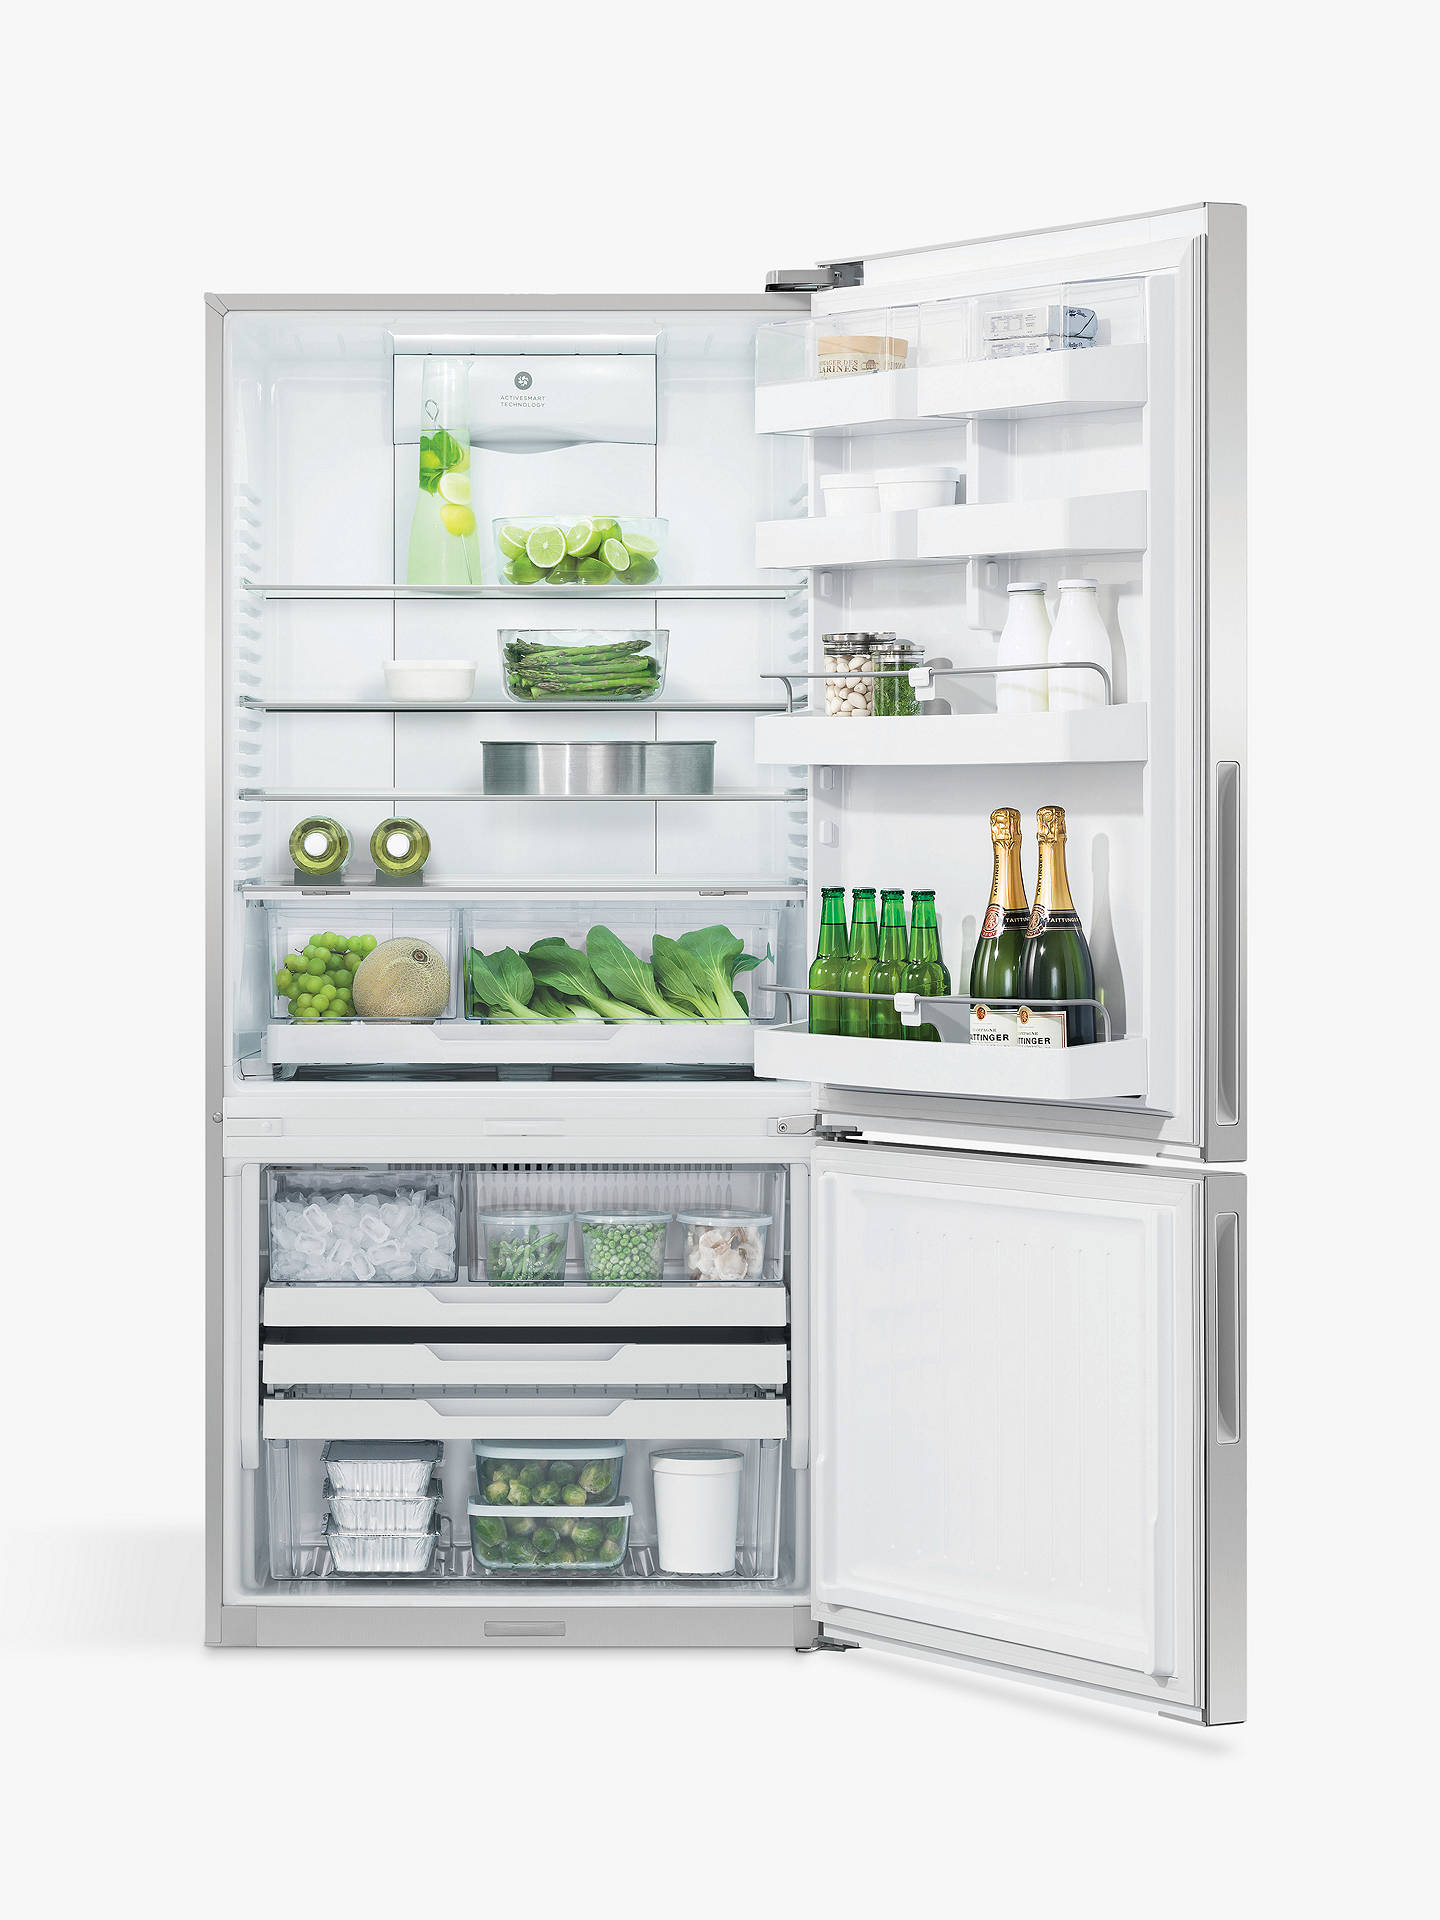 Buy Fisher & Paykel RF522BRPUX6 Fridge Freezer, A+ Energy Rating, 80cm Wide, Stainless Steel Online at johnlewis.com